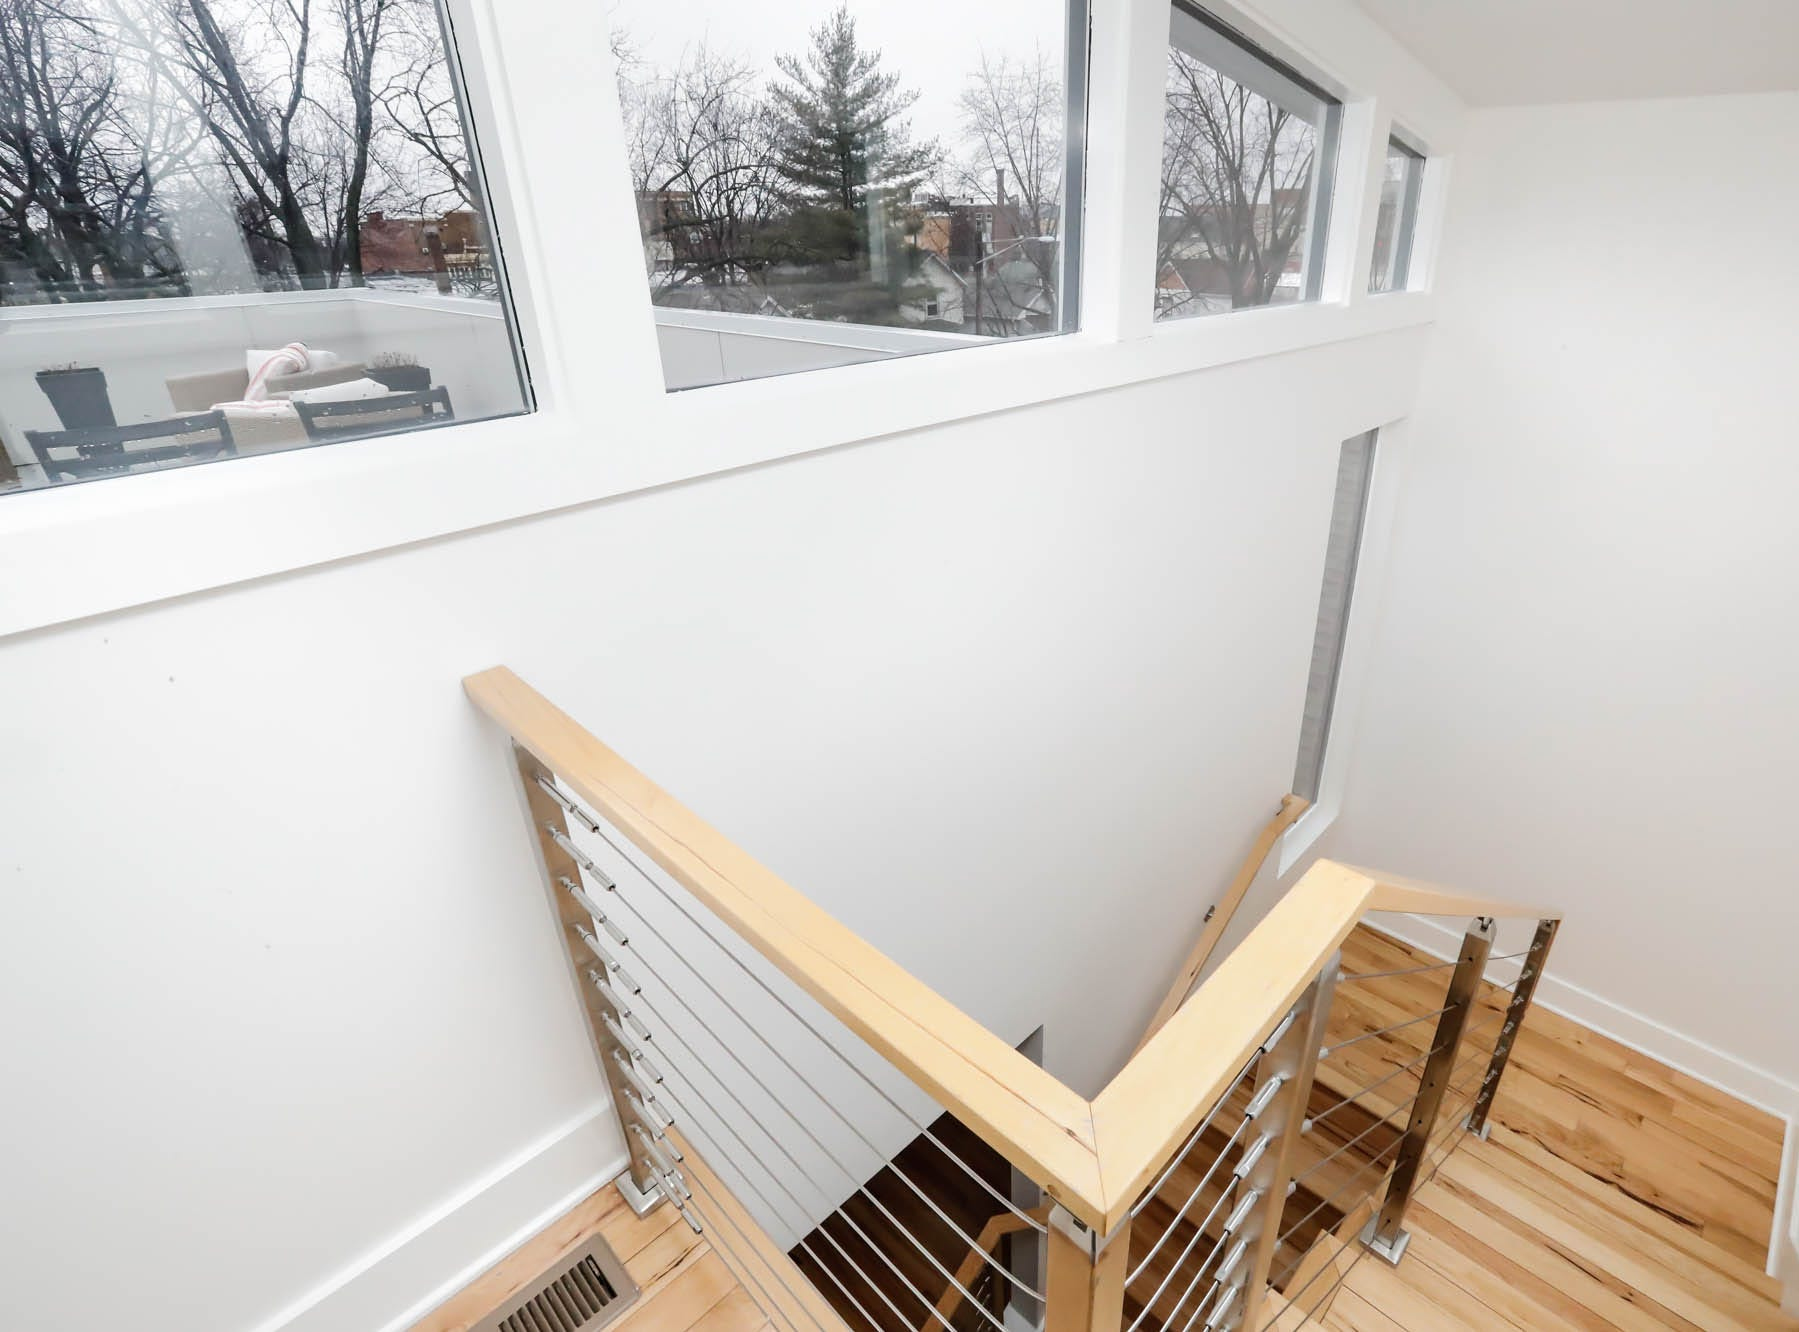 A staircase leads to a third-floor exterior patio at a newly built modern architectural home up for sale at 1134 Woodlawn Ave., Indianapolis, Ind., 46203, in the heart of the historic Fountain Square neighborhood on Wednesday, January 23, 2019. The three-story home, which features 2,030-square-feet and an open space concept tile and hardwood floors are priced at $479,900.